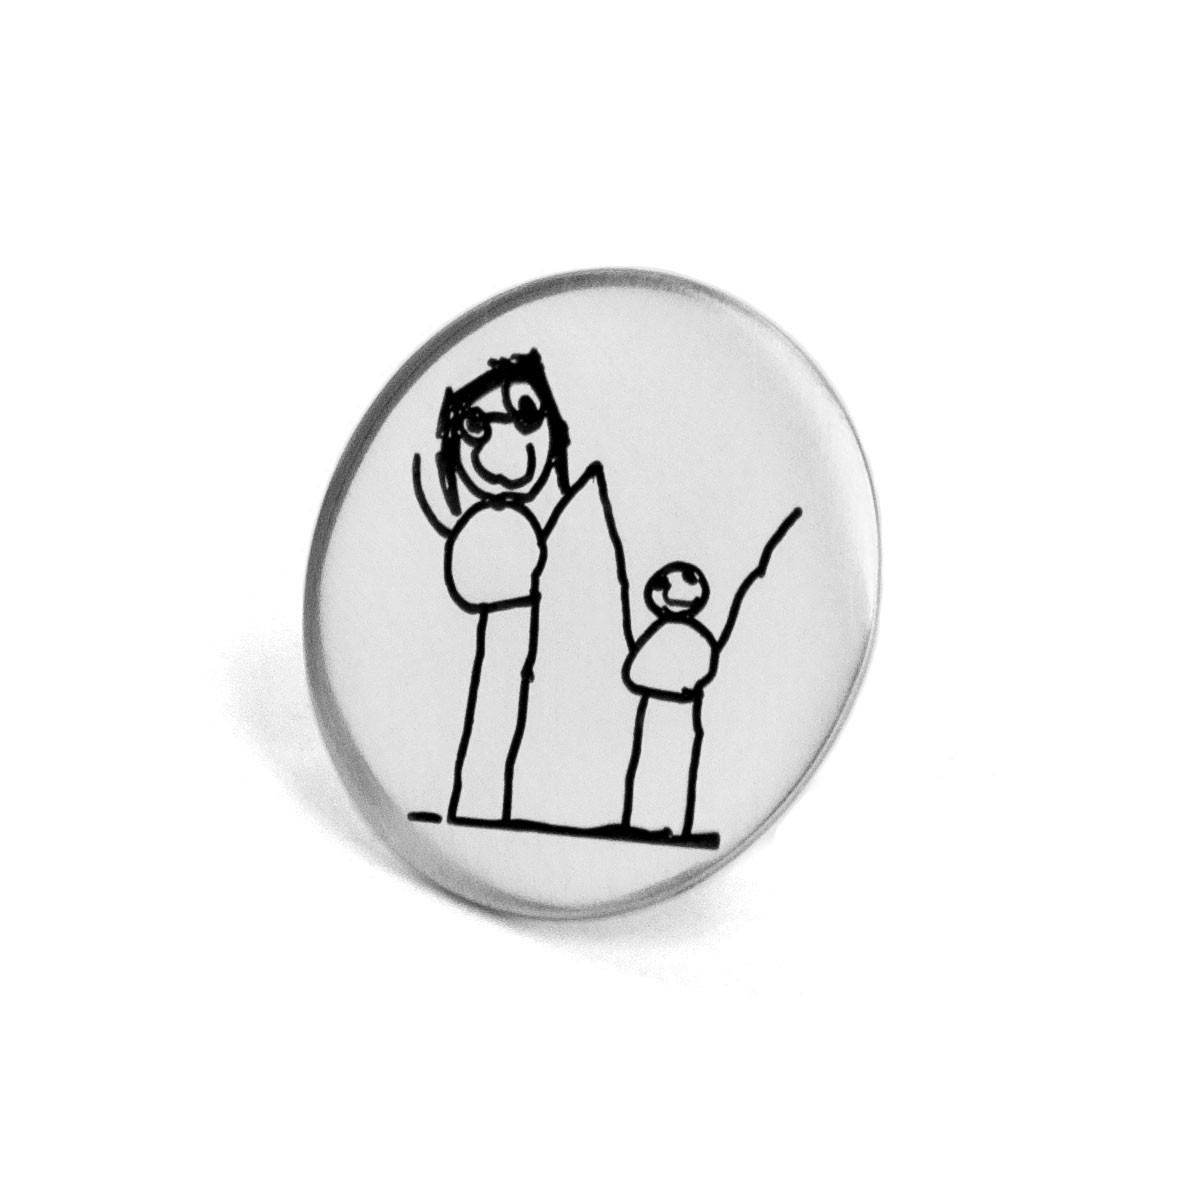 Custom golf ball marker with child's artwork